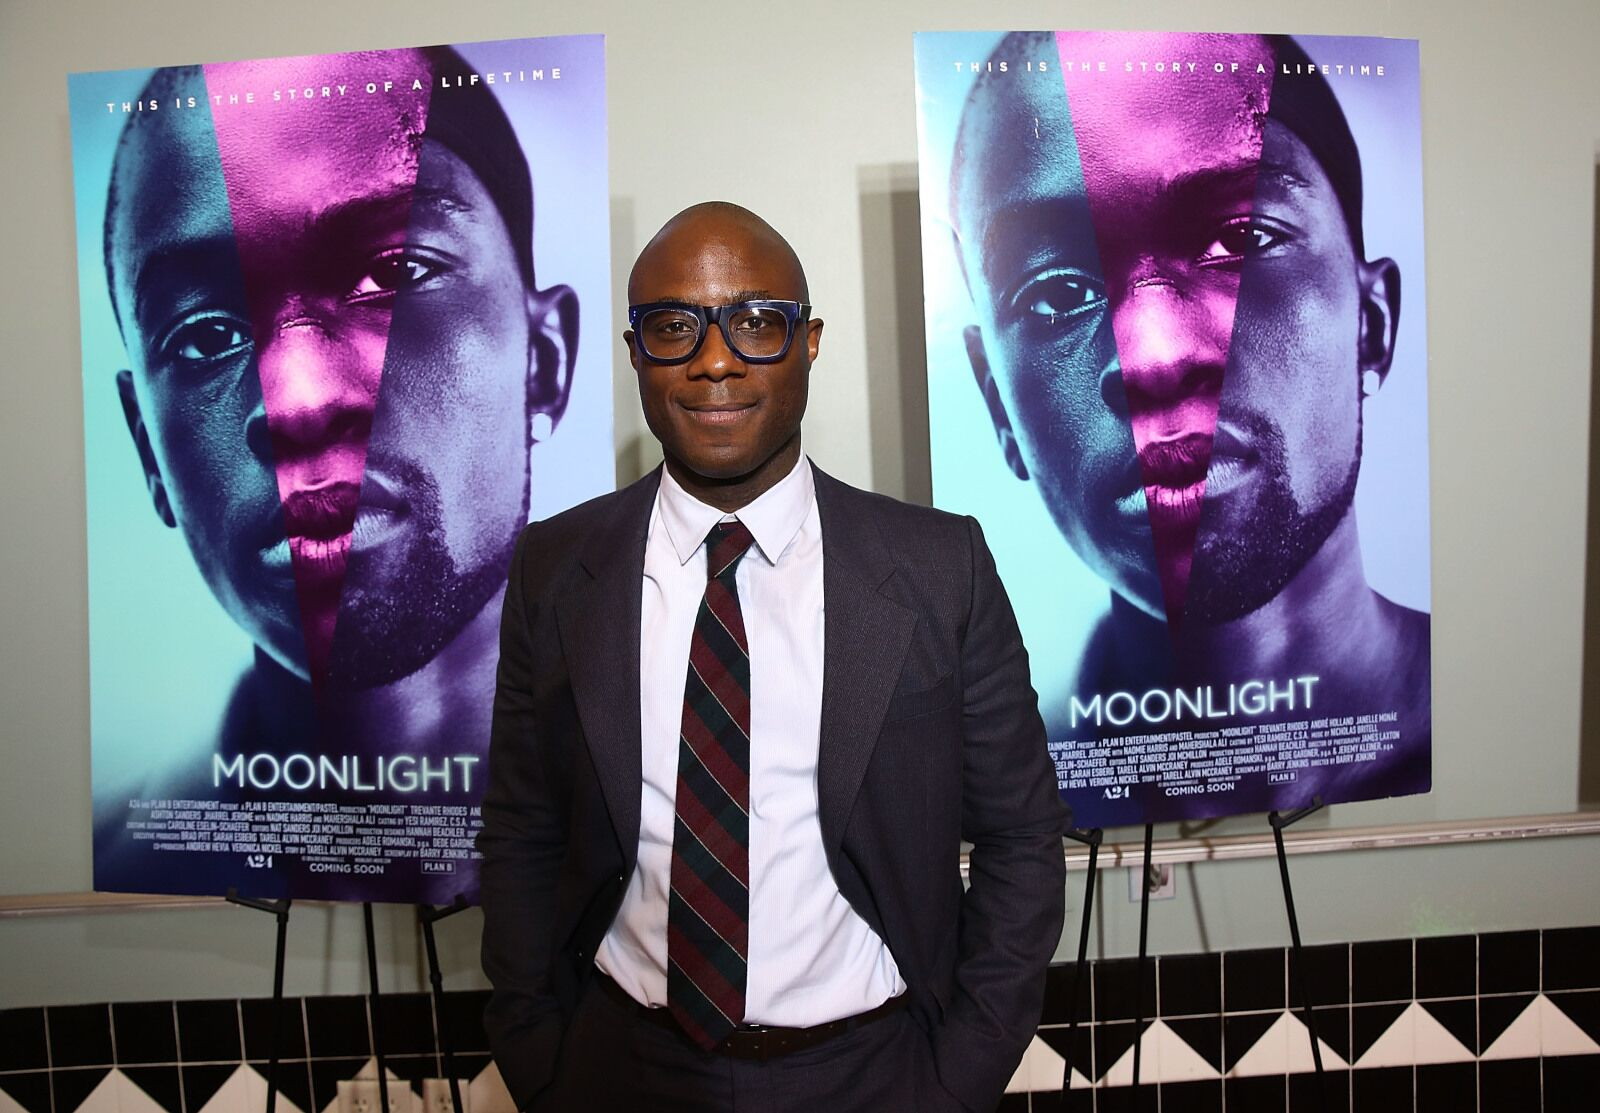 Moonlight is coming to Netflix in May 2019